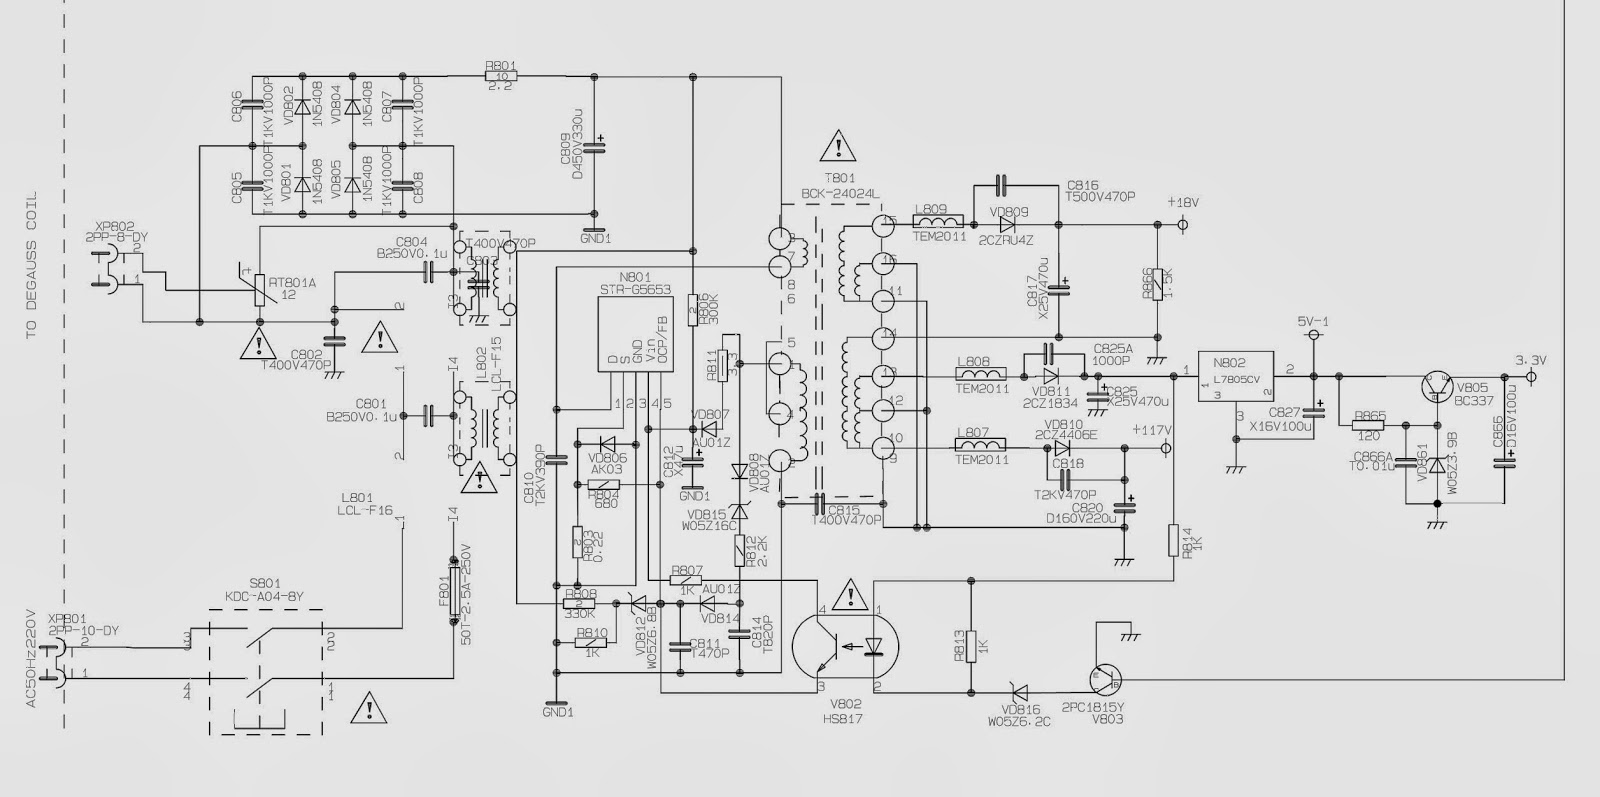 hight resolution of home theater wiring diagrams tivo wave home discover your wiring home theater wiring diagram home discover